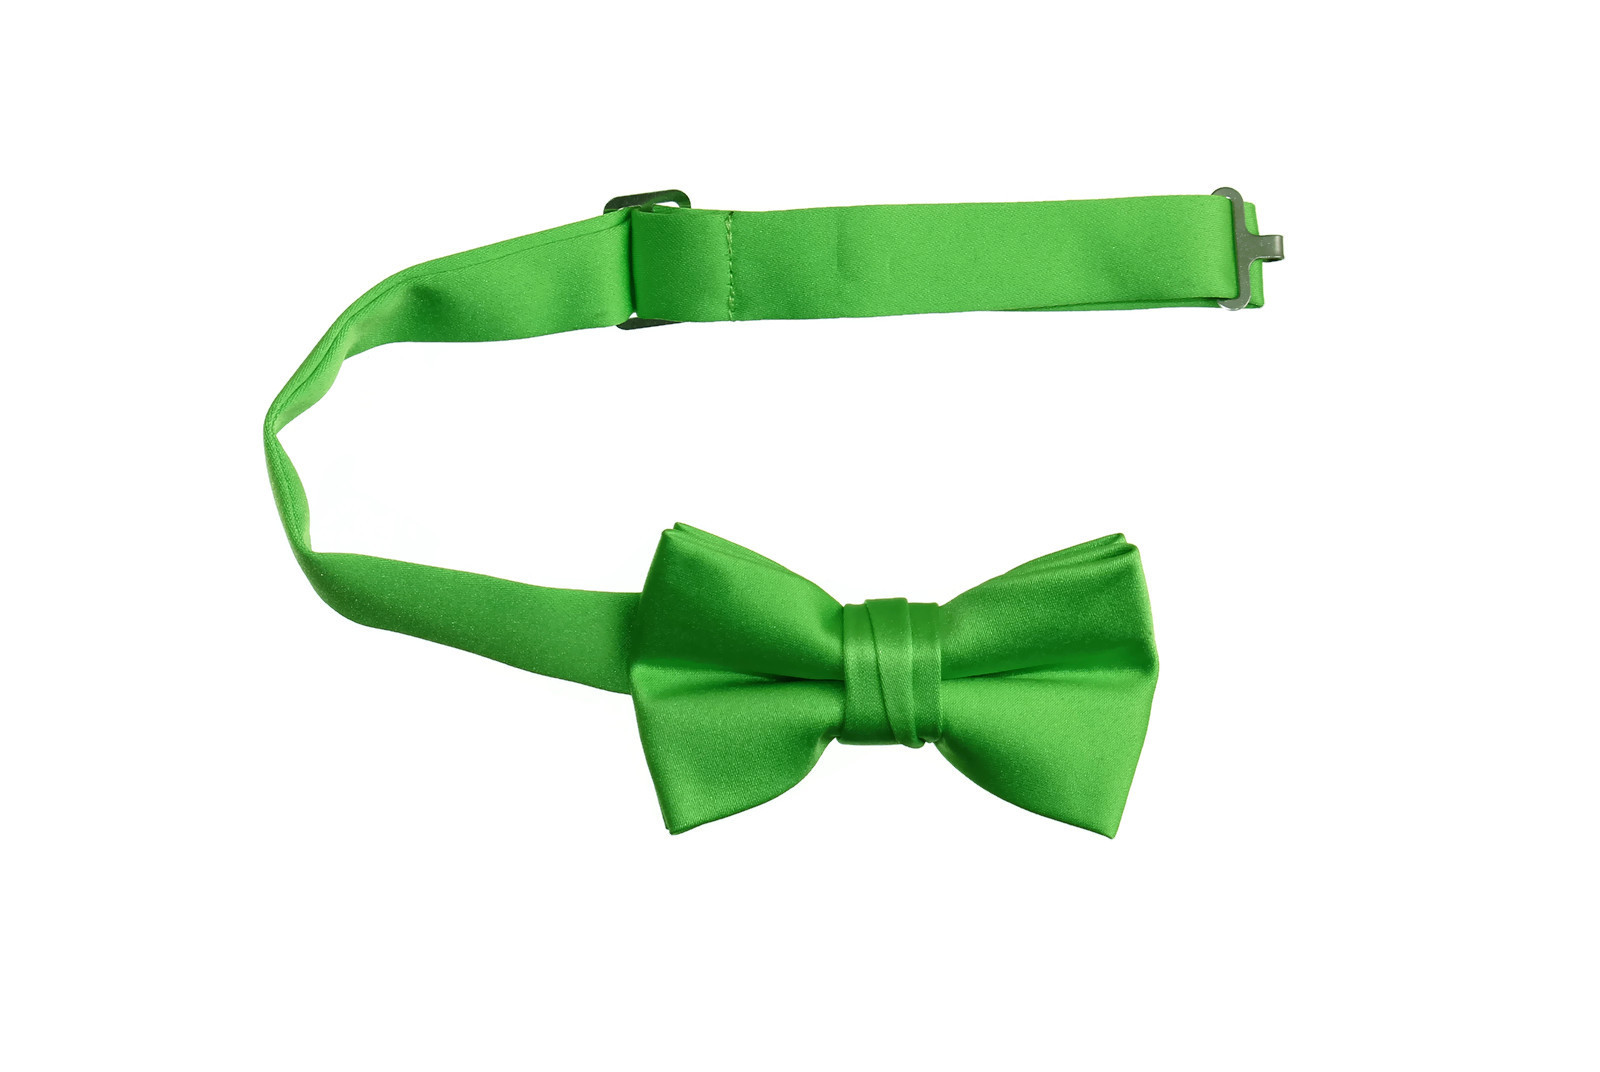 Kelly Green Bow tie Solid green bow tie green baby bowtie adjustable pretied kids bowtie Emerald green; Grass green bowtie for boys